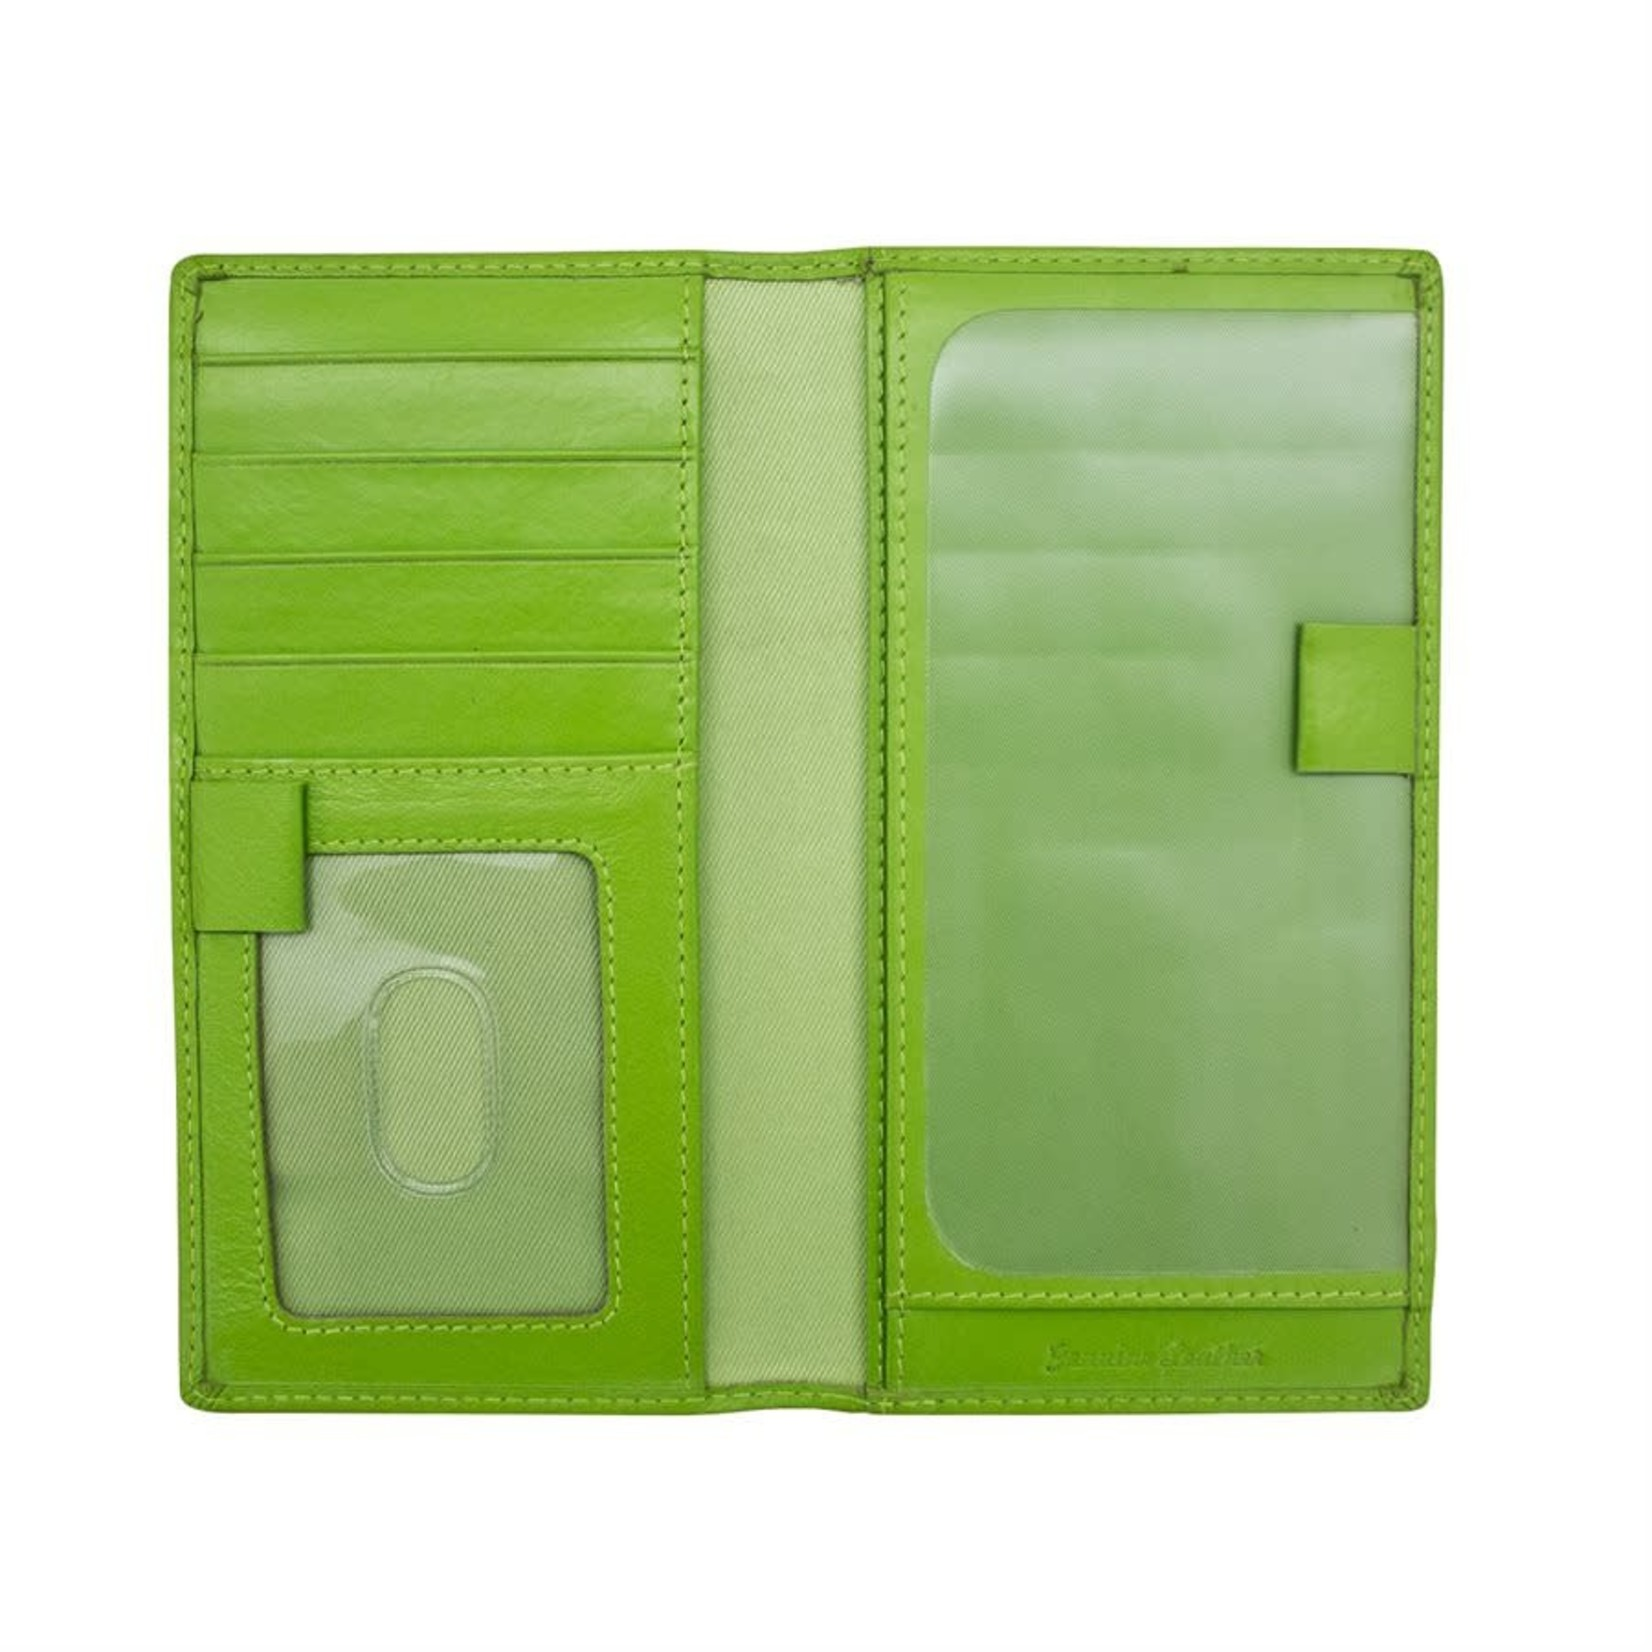 Leather Handbags and Accessories 7406 Leaf - RFID Checkbook Cover